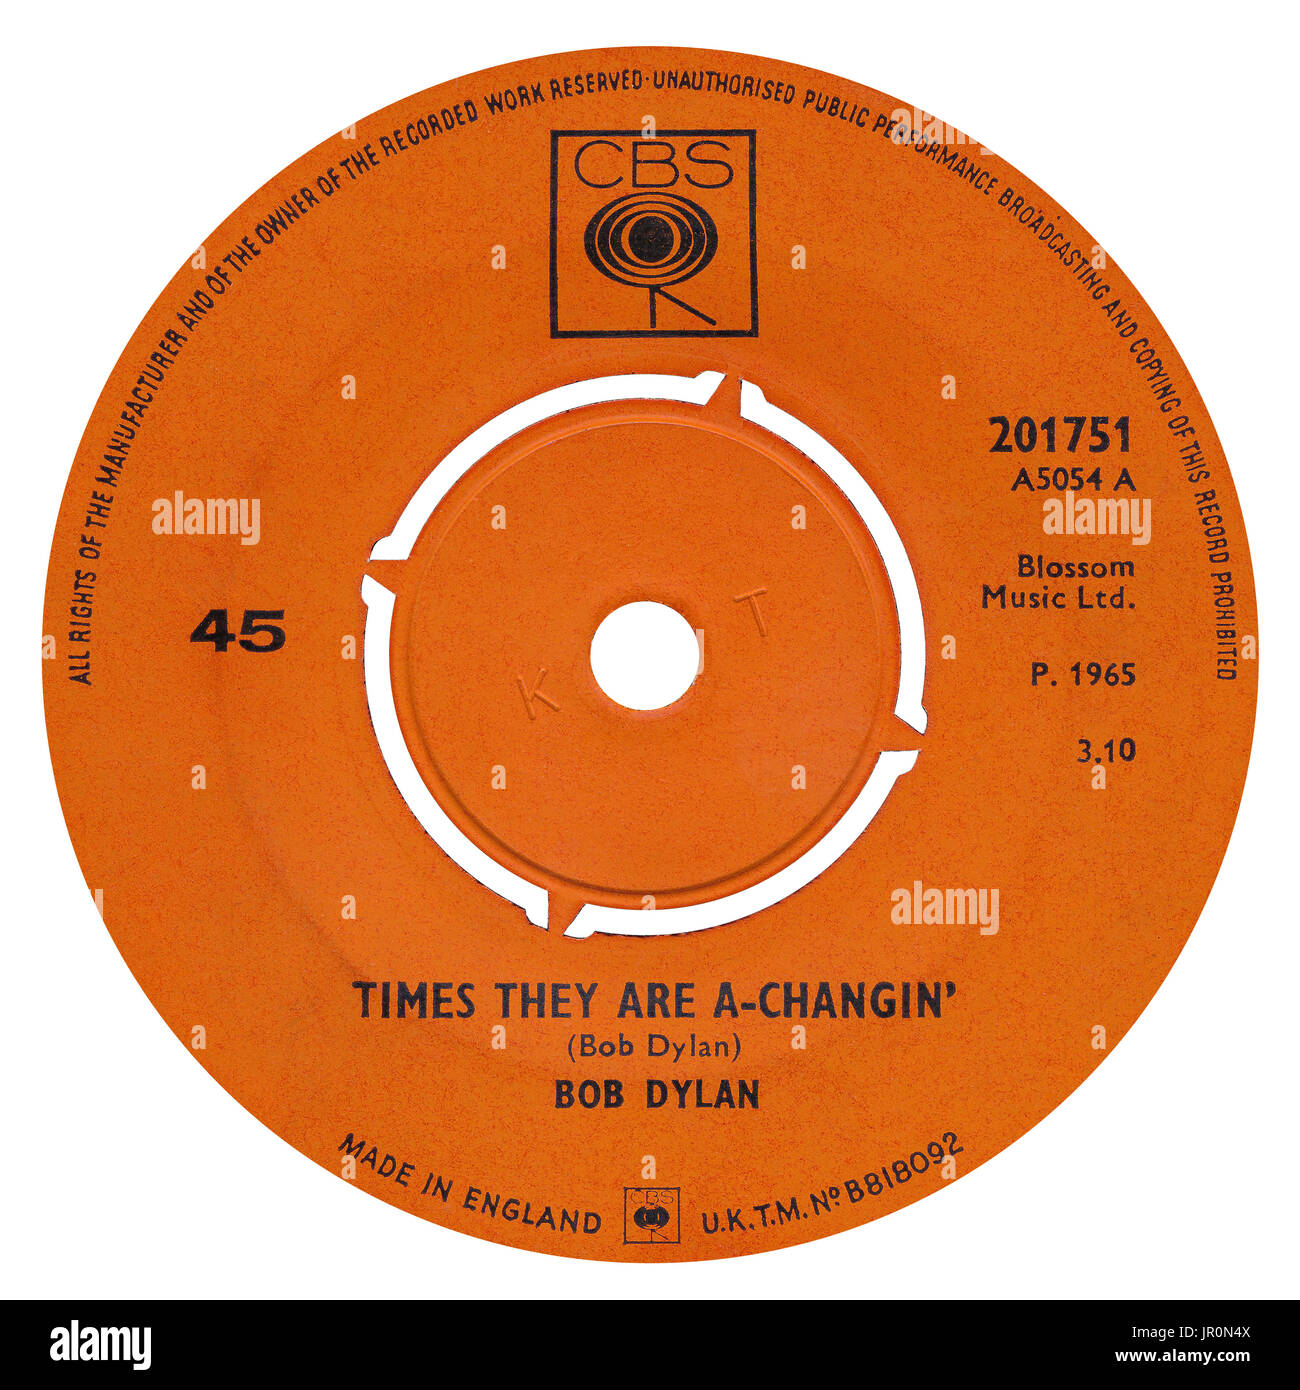 """45 RPM 7"""" UK record label of Times They Are A-Changin' by Bob Dylan on the CBS label from 1965. From the 1964 album Stock Photo"""